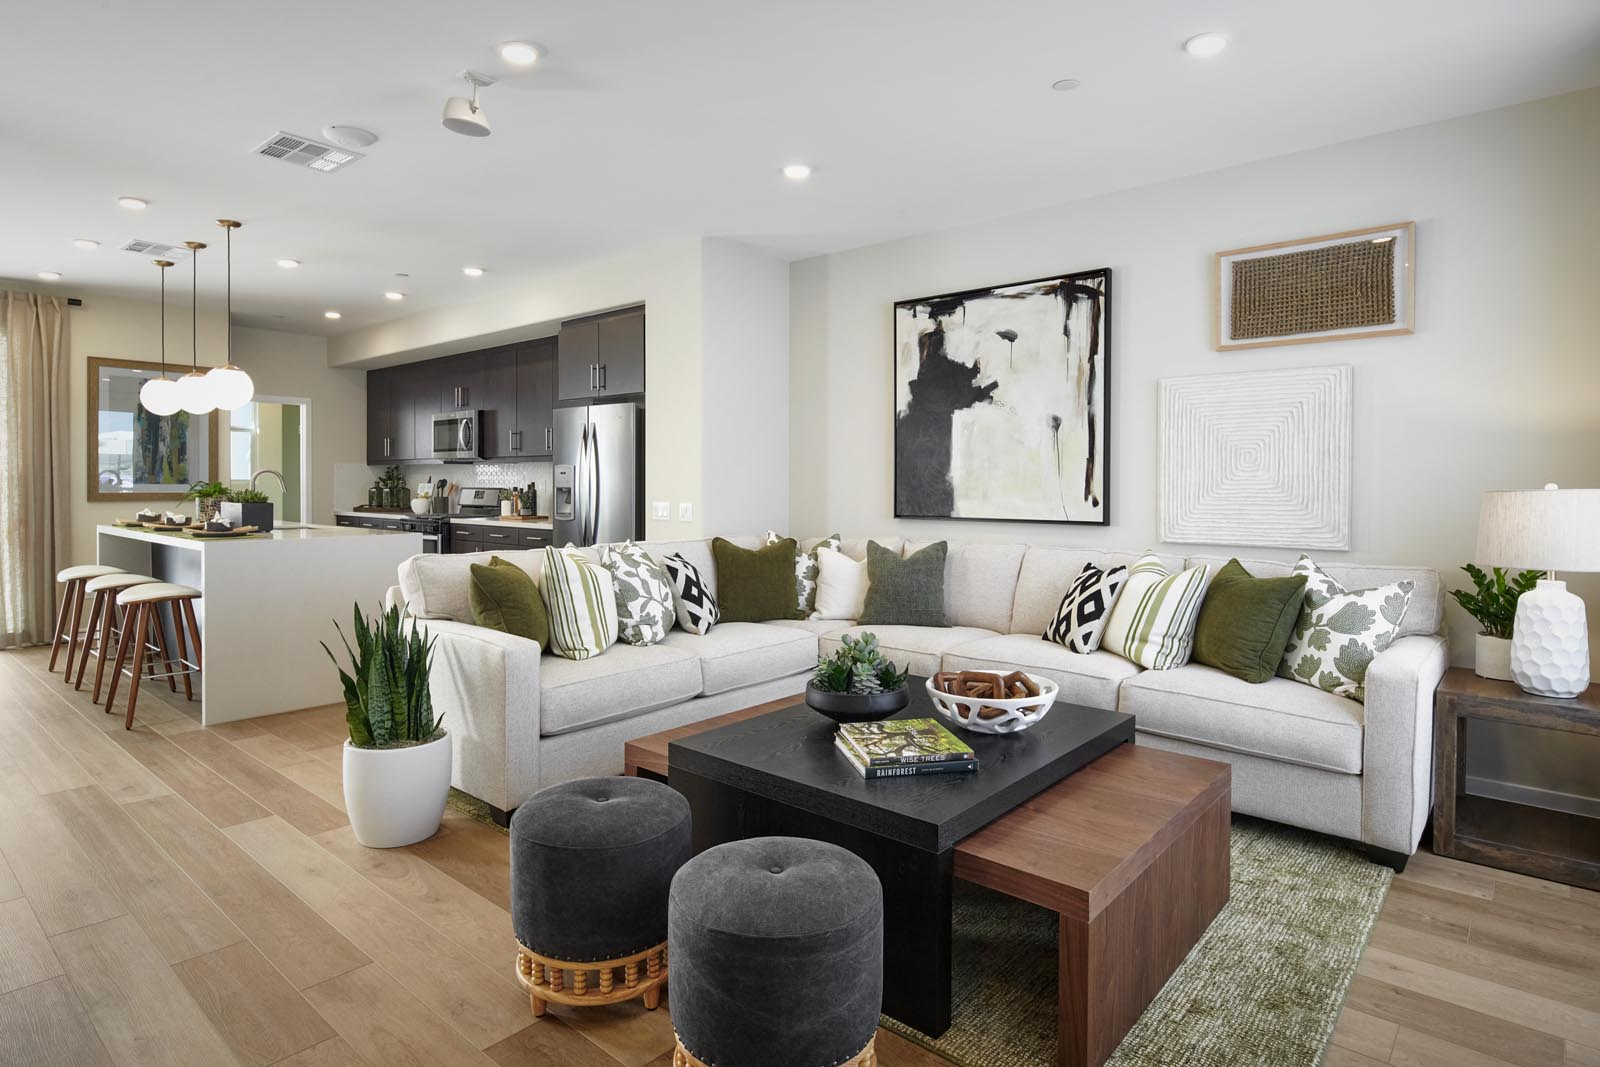 Great Room | Residence 3 | Enliven | New Homes in Rancho Cucamonga, CA | Van Daele Homes